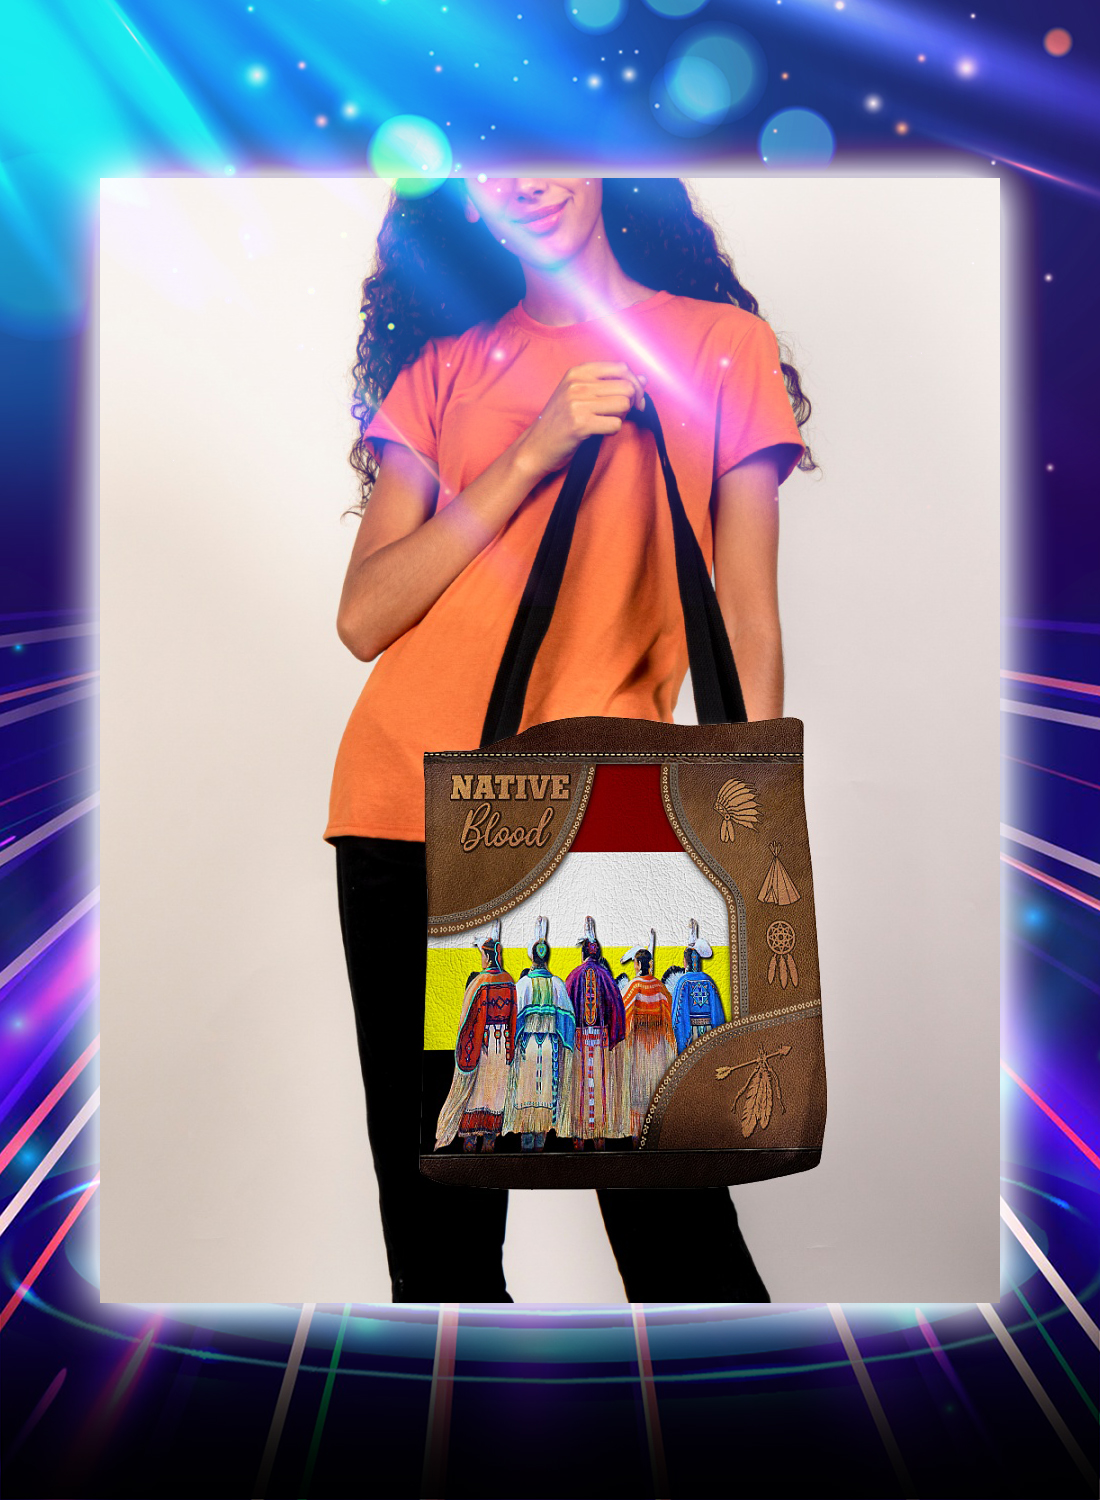 Native blood tote bag - Picture 1